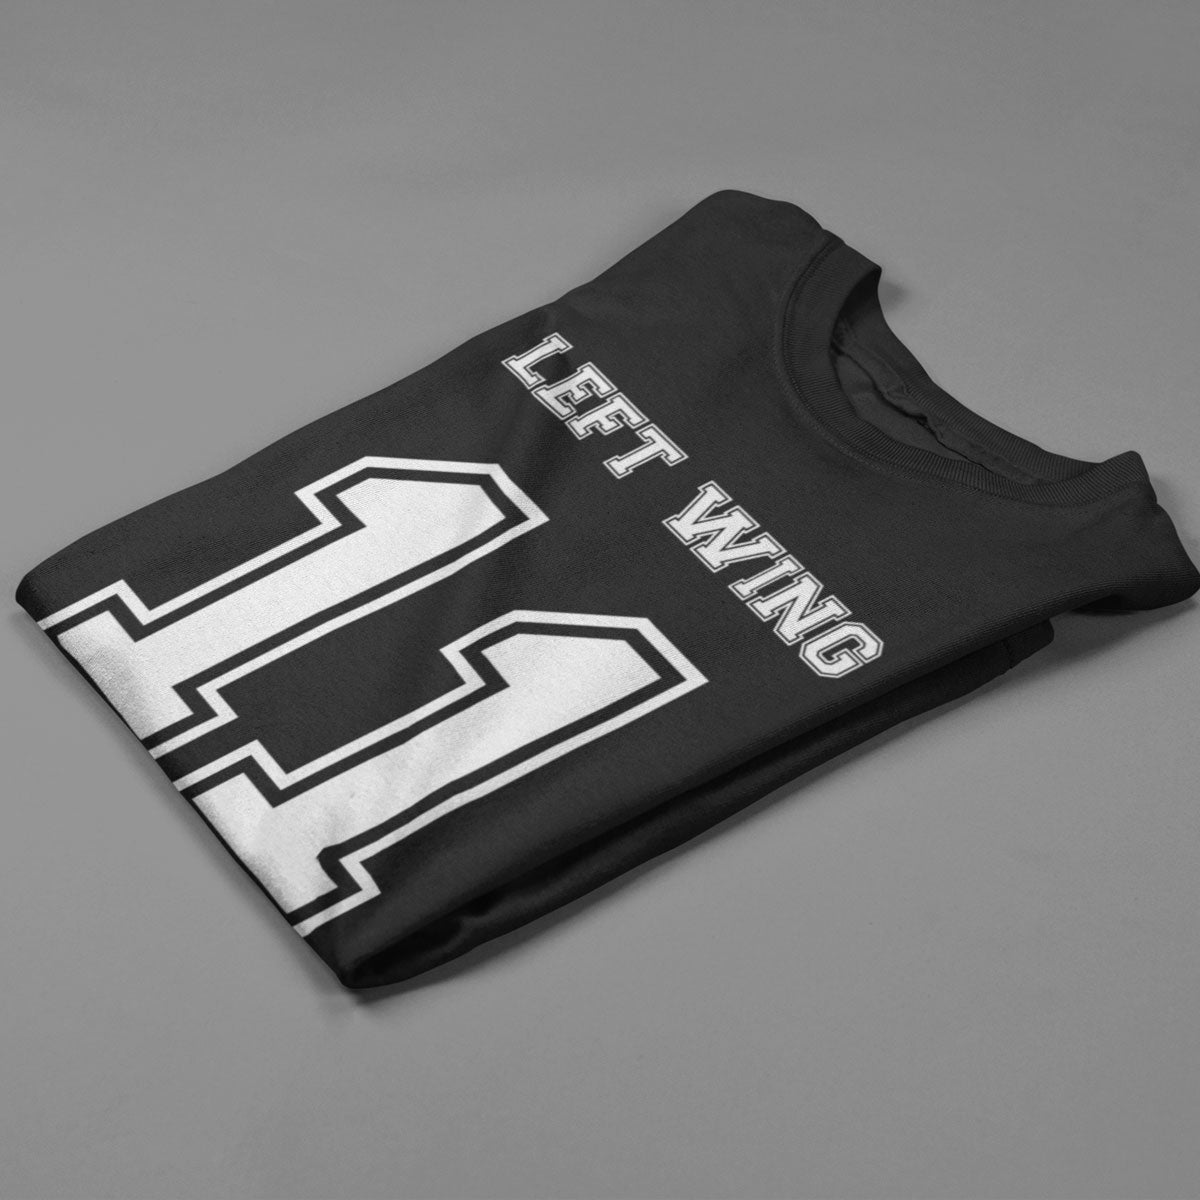 Left Wing Number 11 Rugby Tee - First XV rugbystuff.com